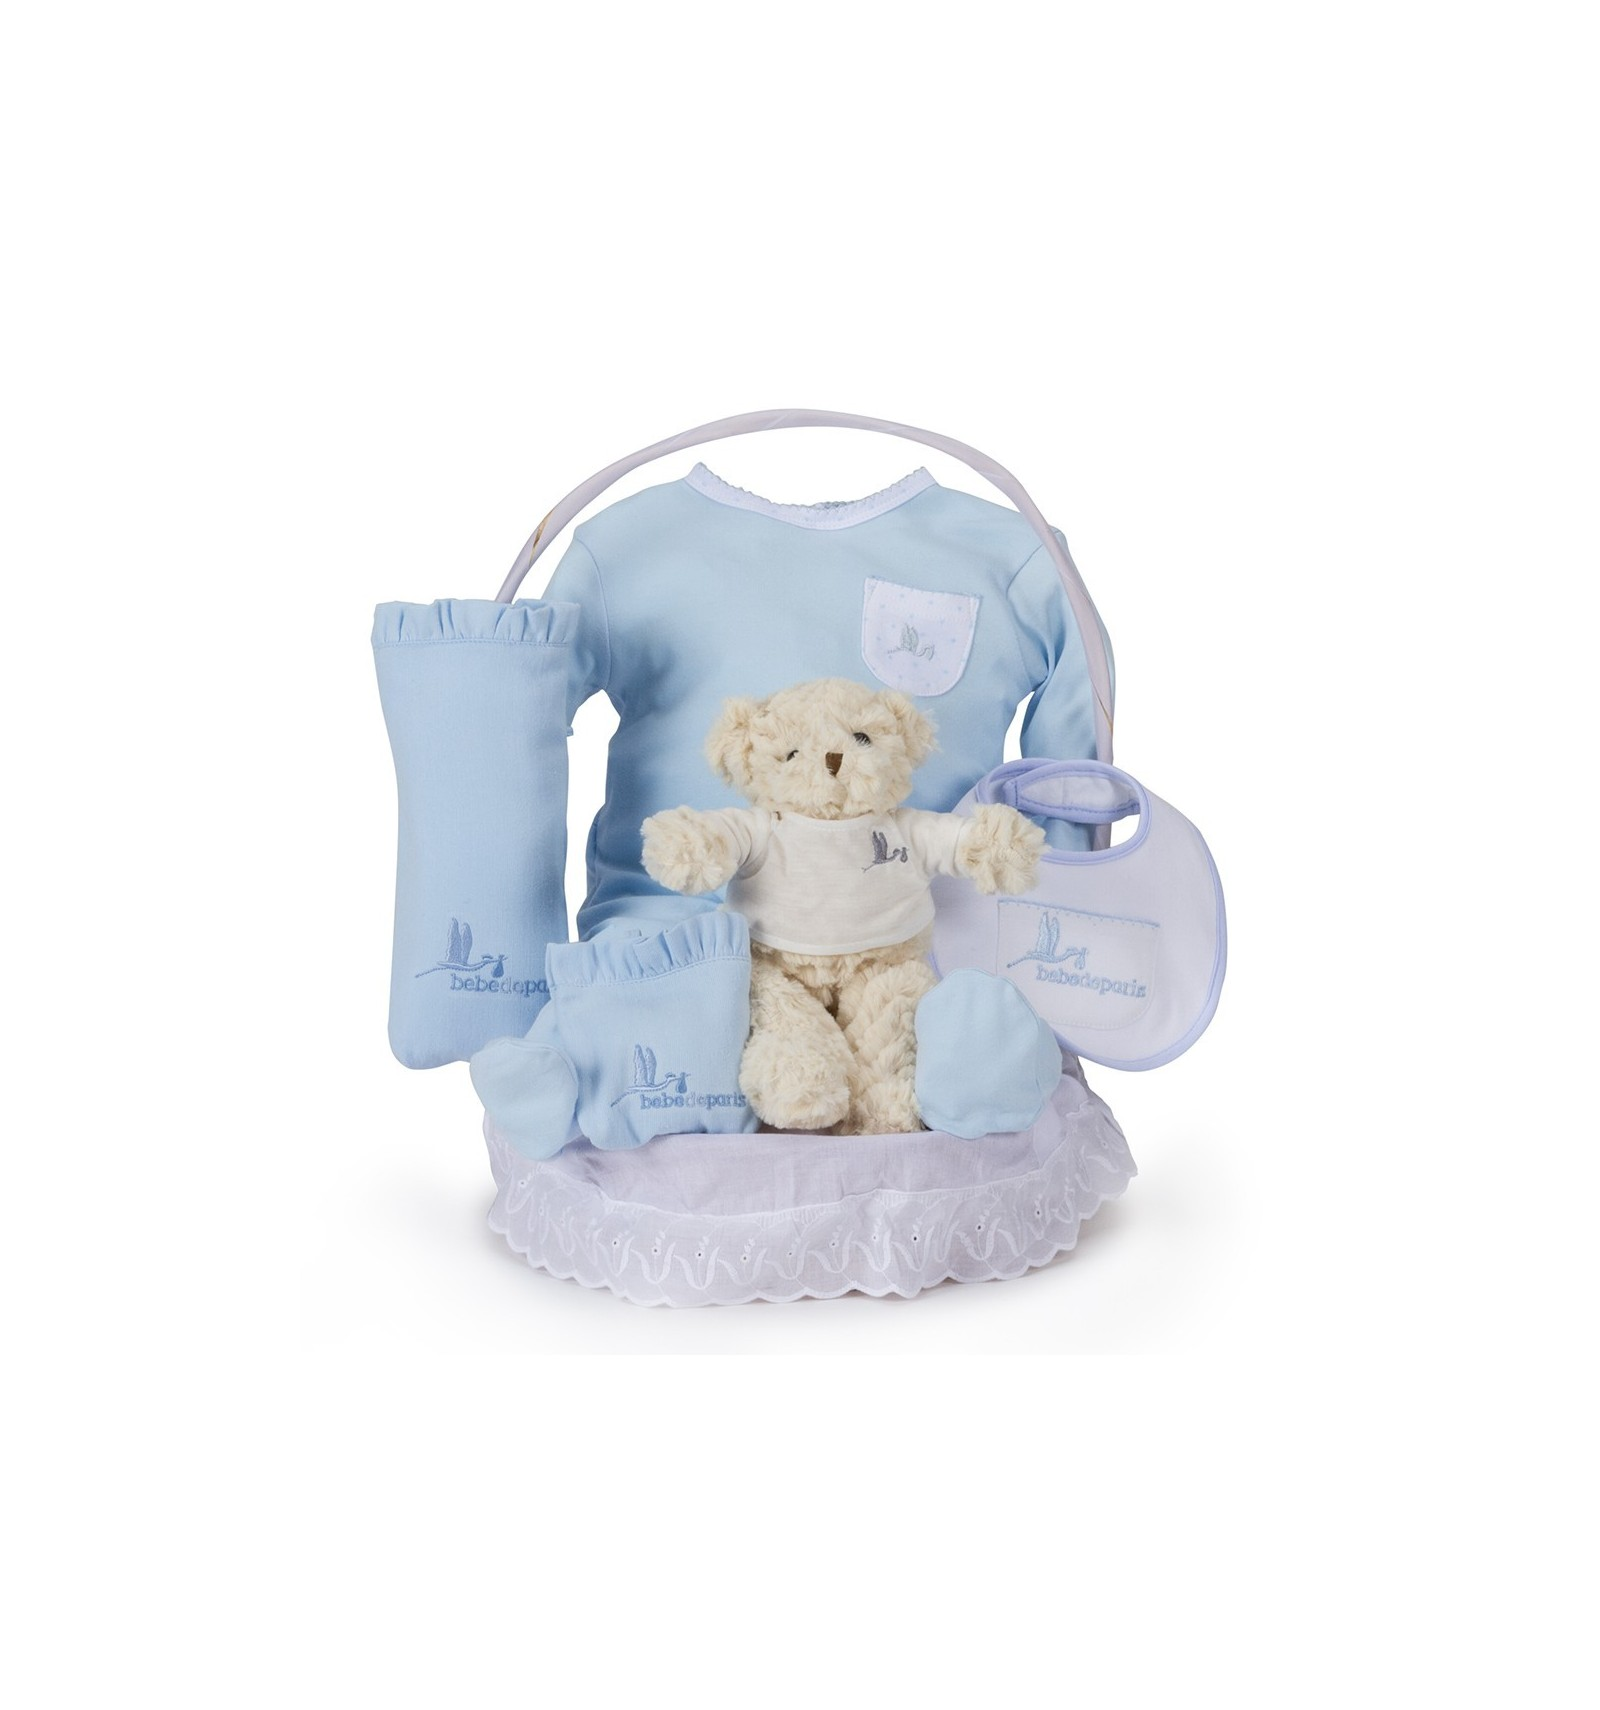 Baby Gift Hamper Uk : Classic essential baby gift hamper